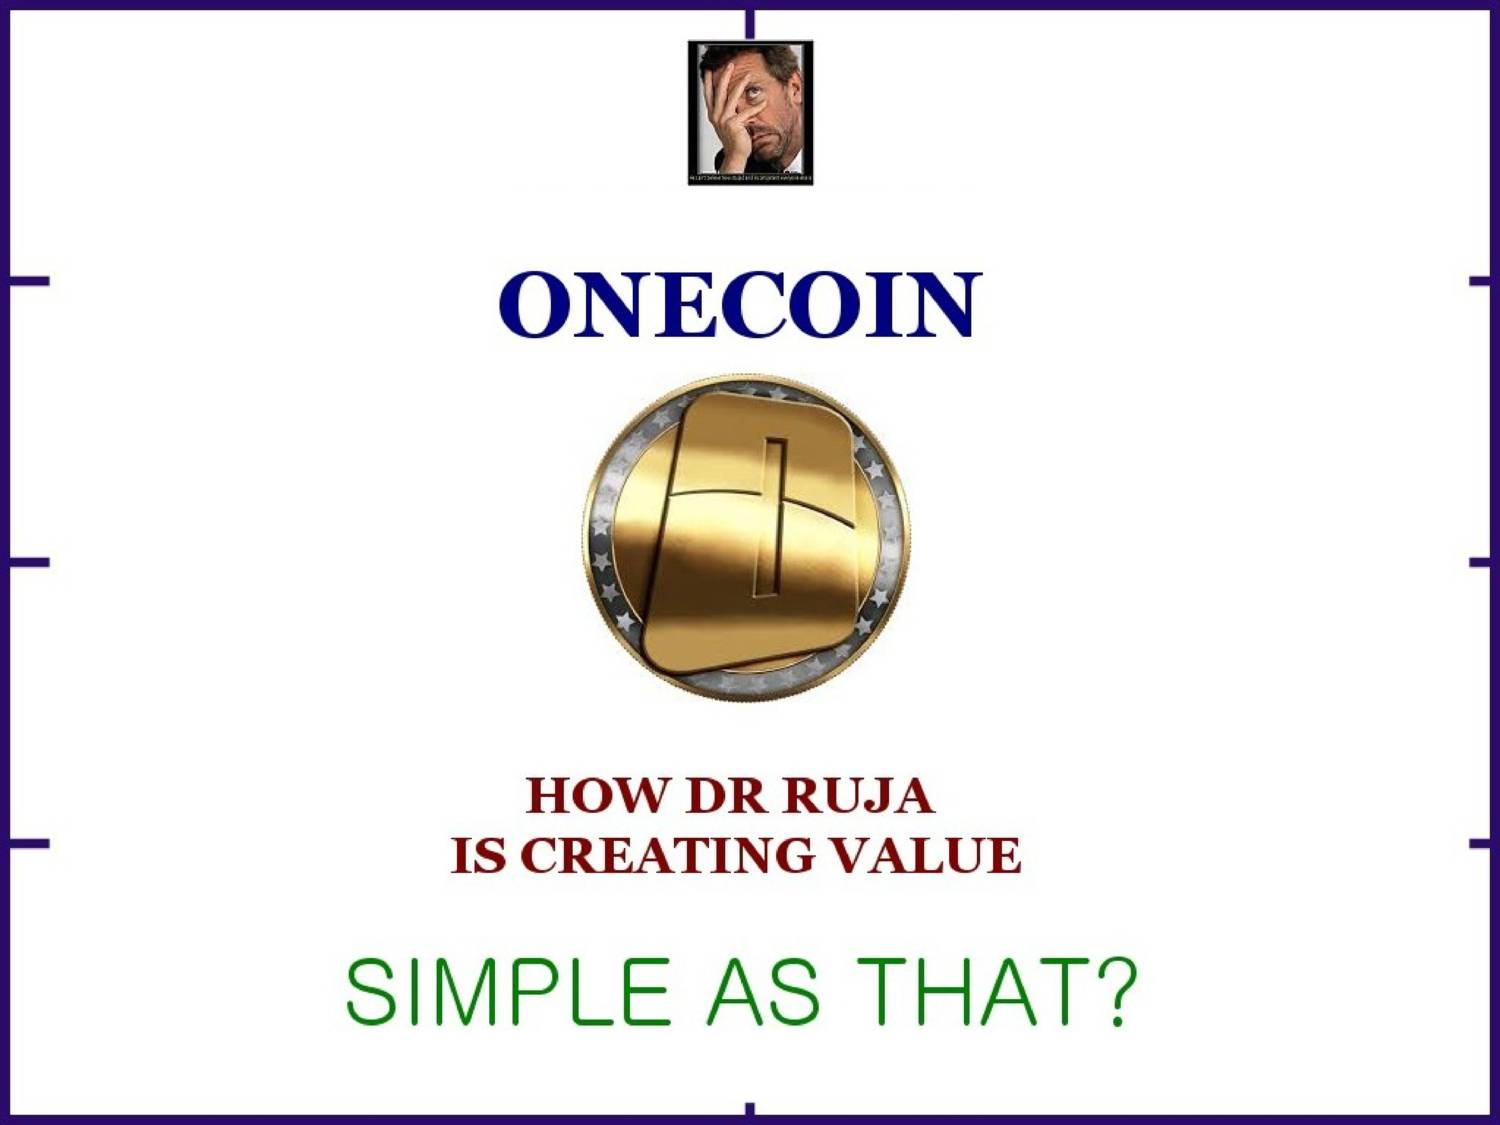 ONECOIN FRAUD pdf | DocDroid